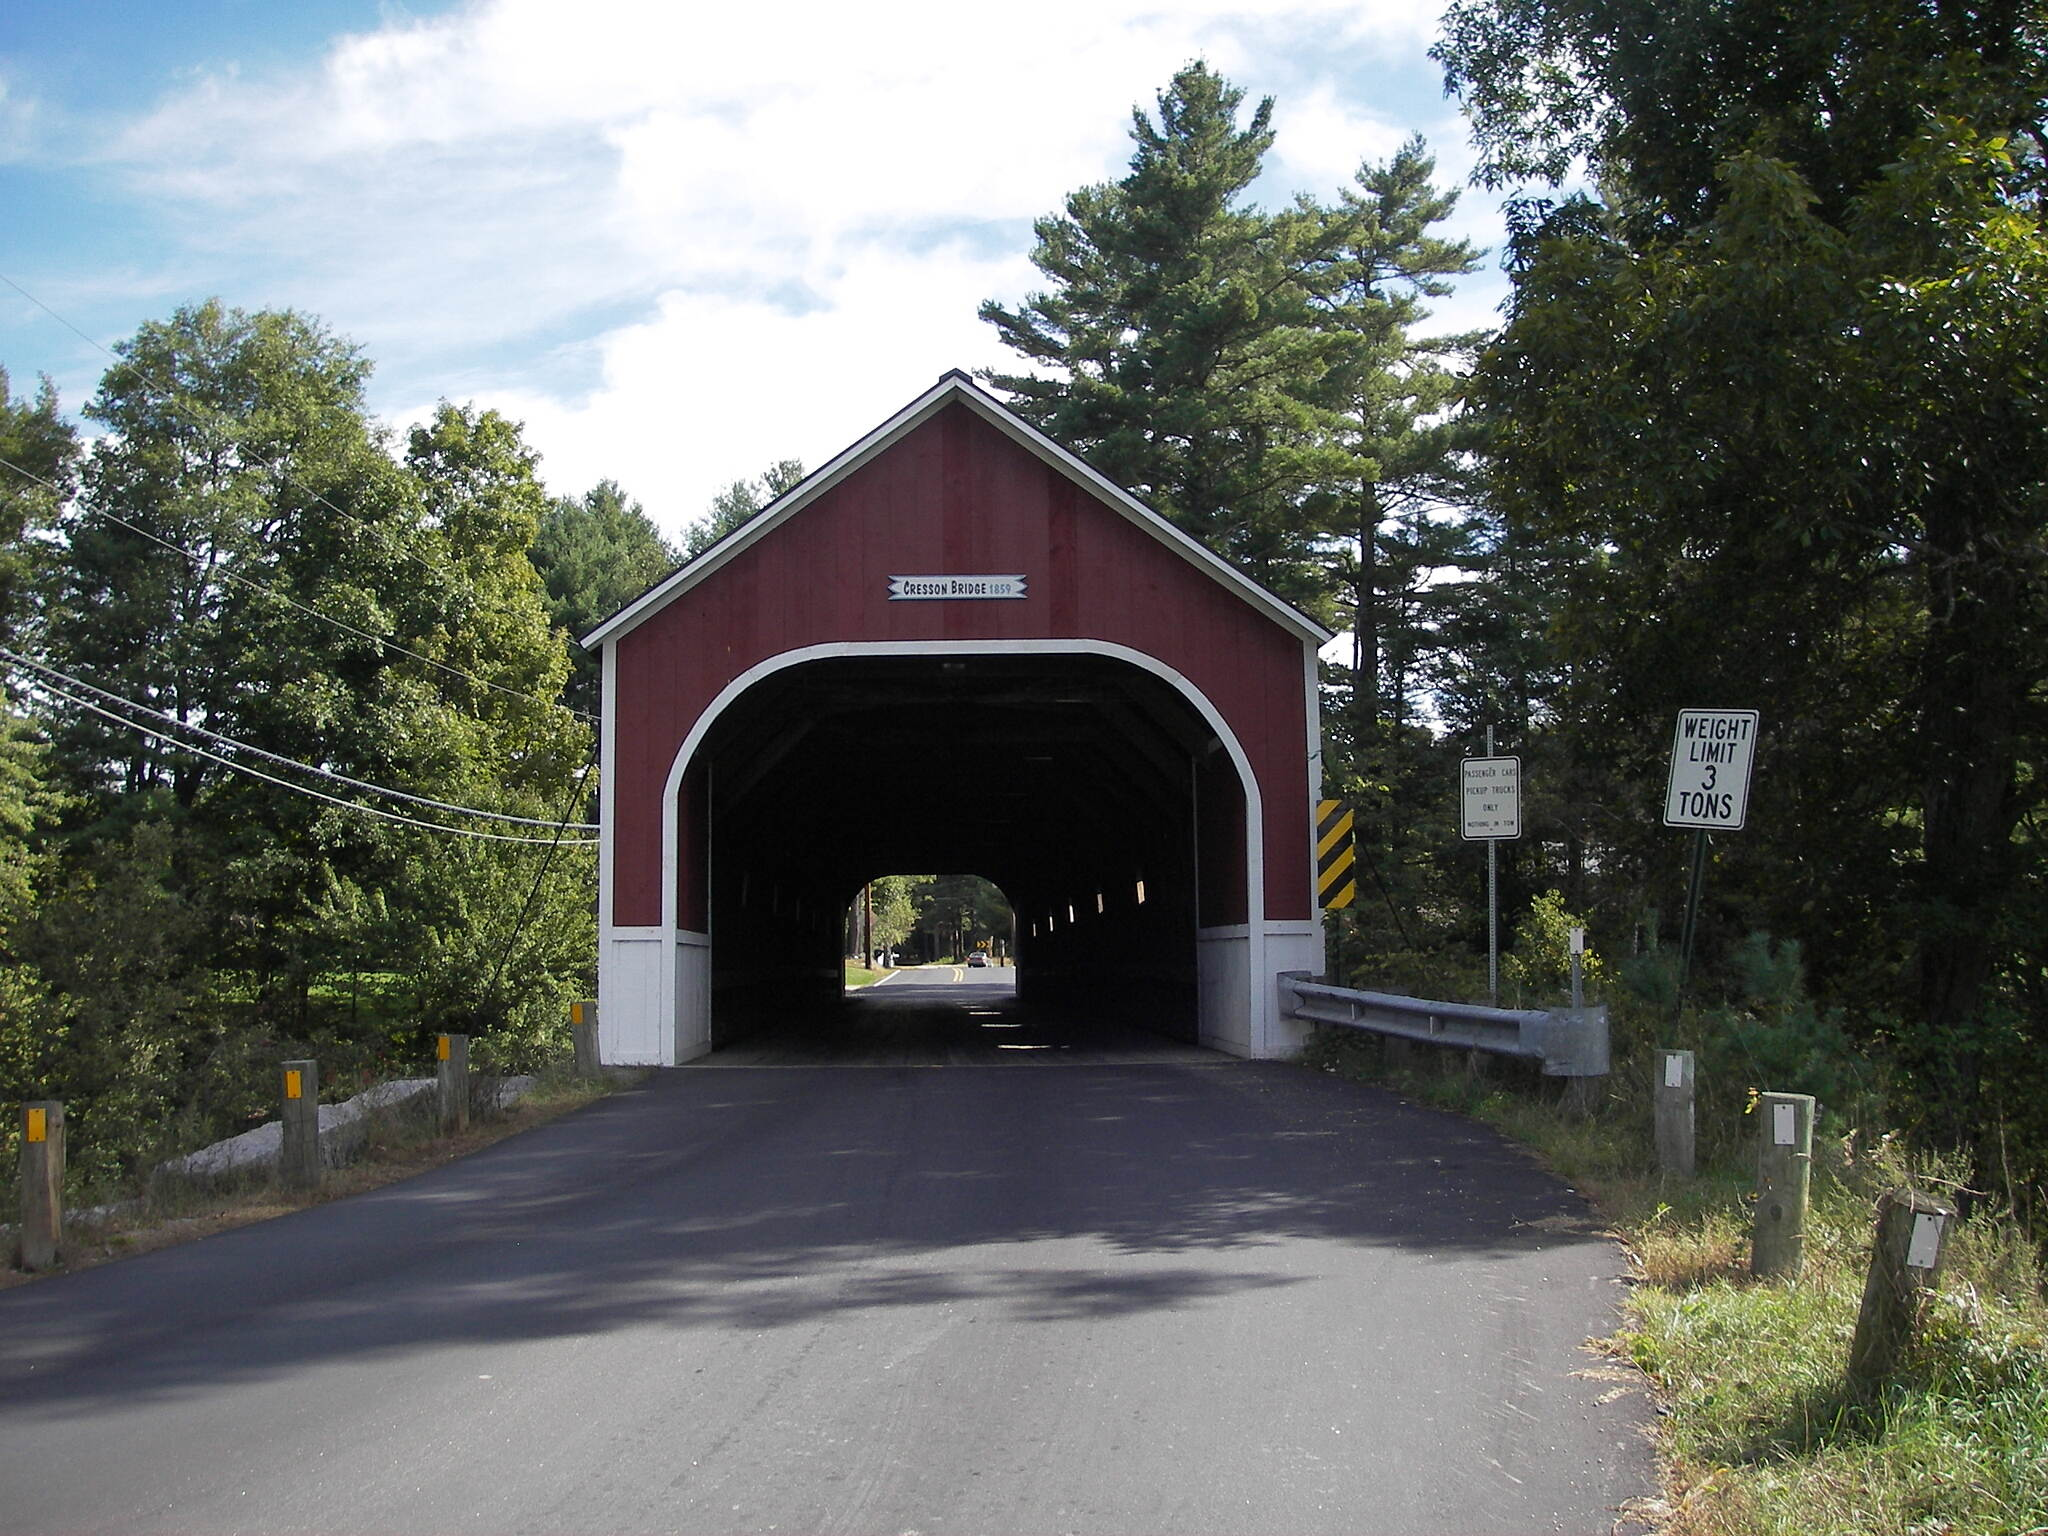 Ashuelot Recreational Rail Trail another covered bridge near trail This bridge is part of a loop on roads that include at least 6 bridges.